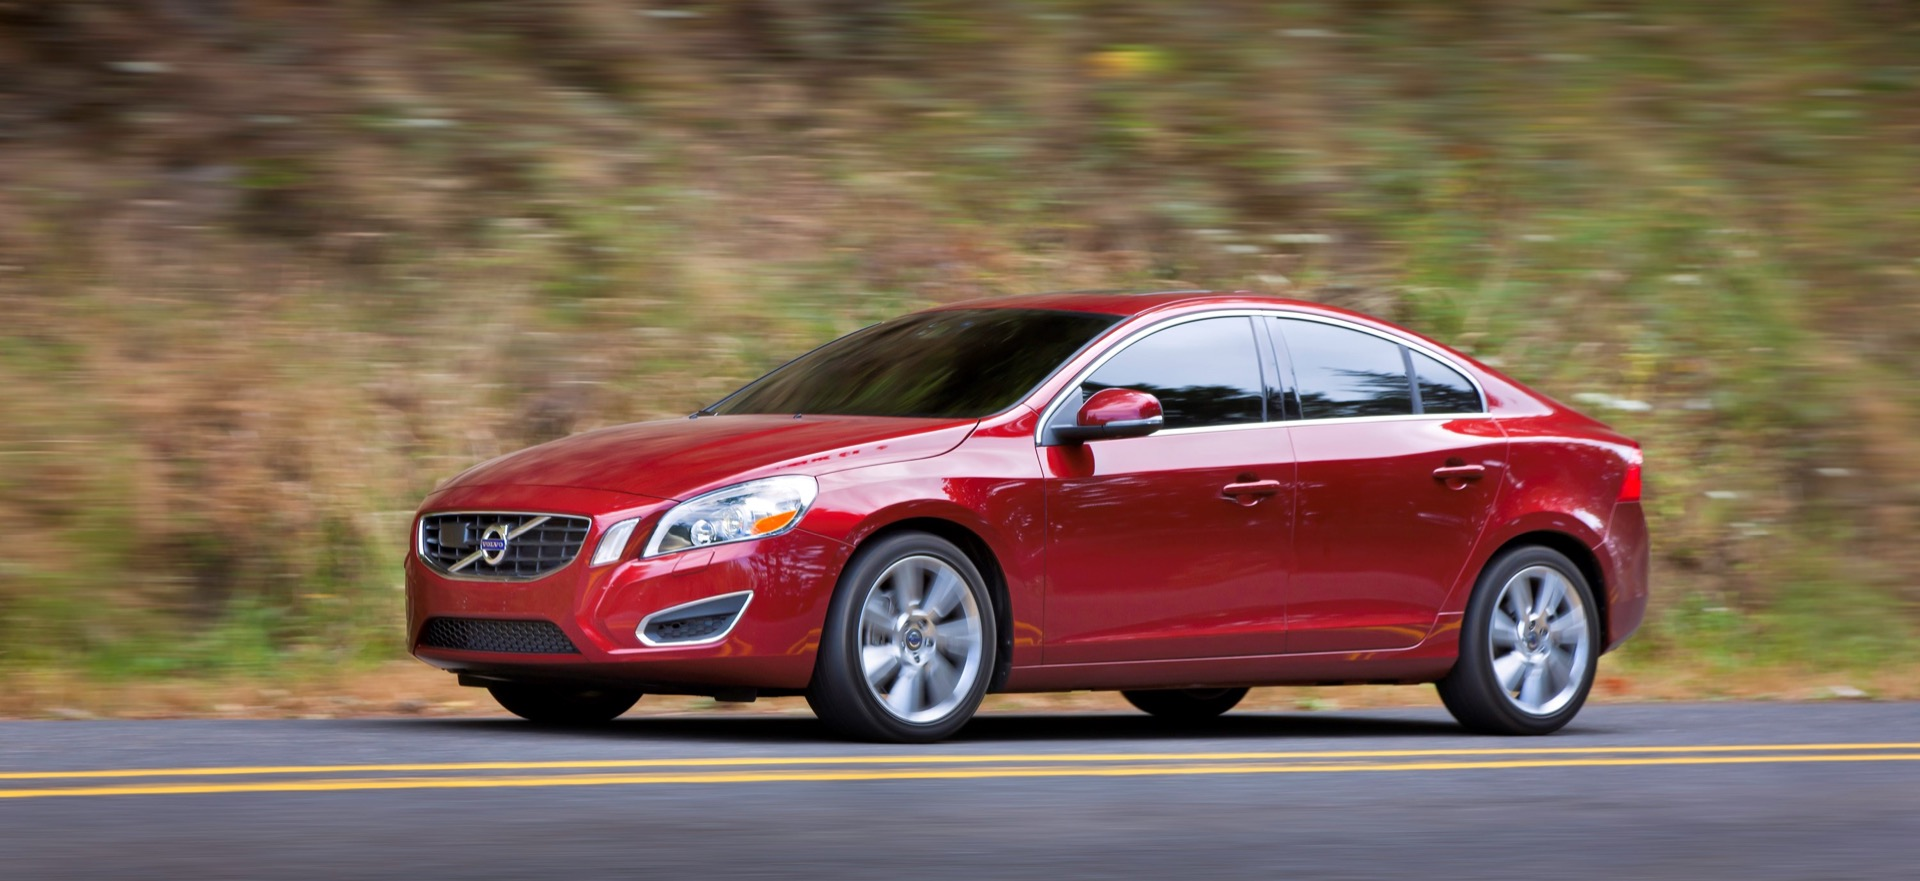 S60 T6 Awd Driving Action13 -  Volvo